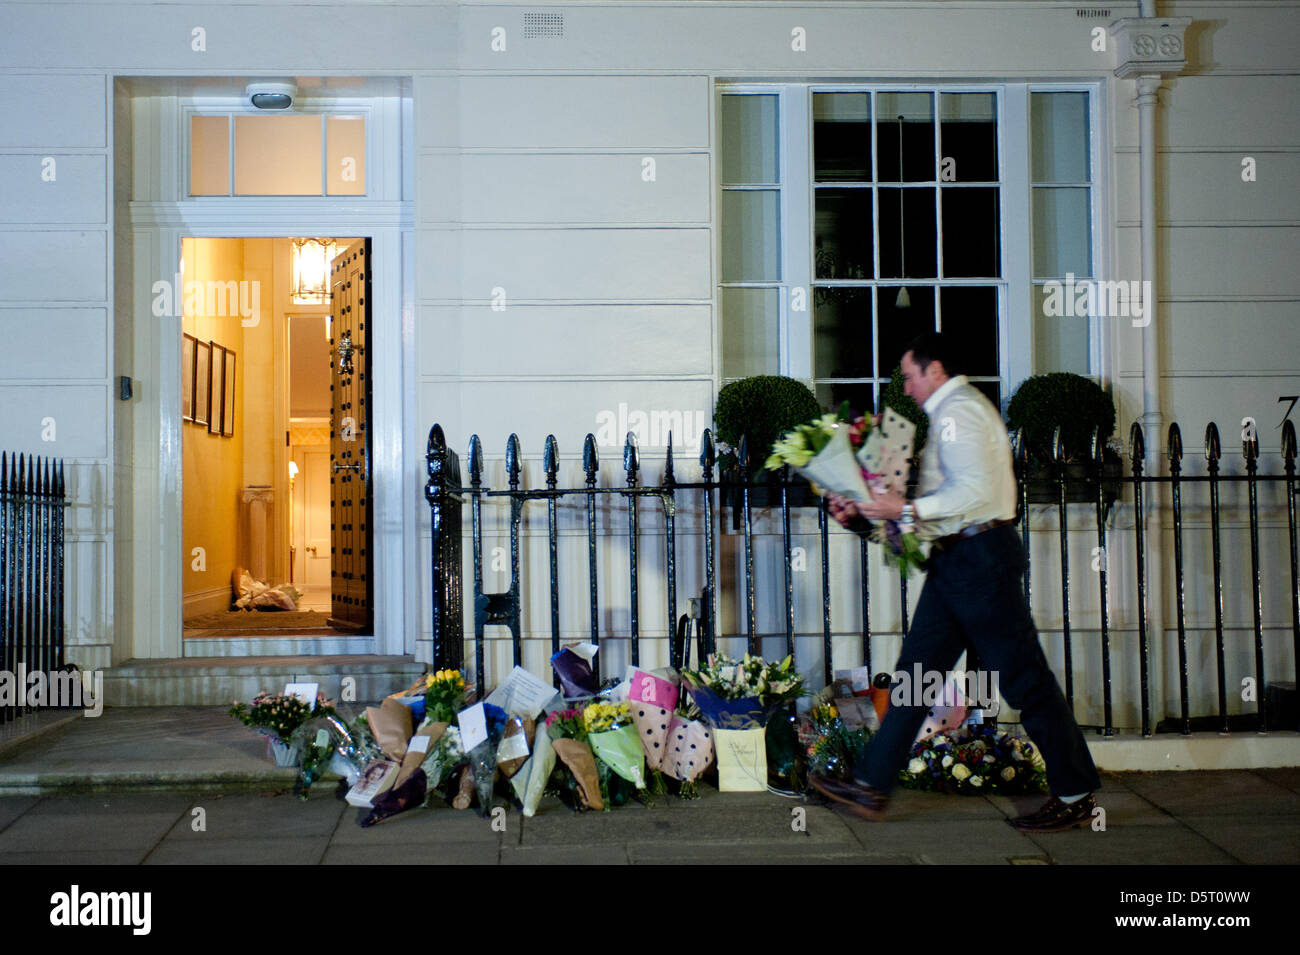 London,UK. 8th April 2013. Flower tributes are collected and brought inside the residence of Margaret Thatcher in - Stock Image